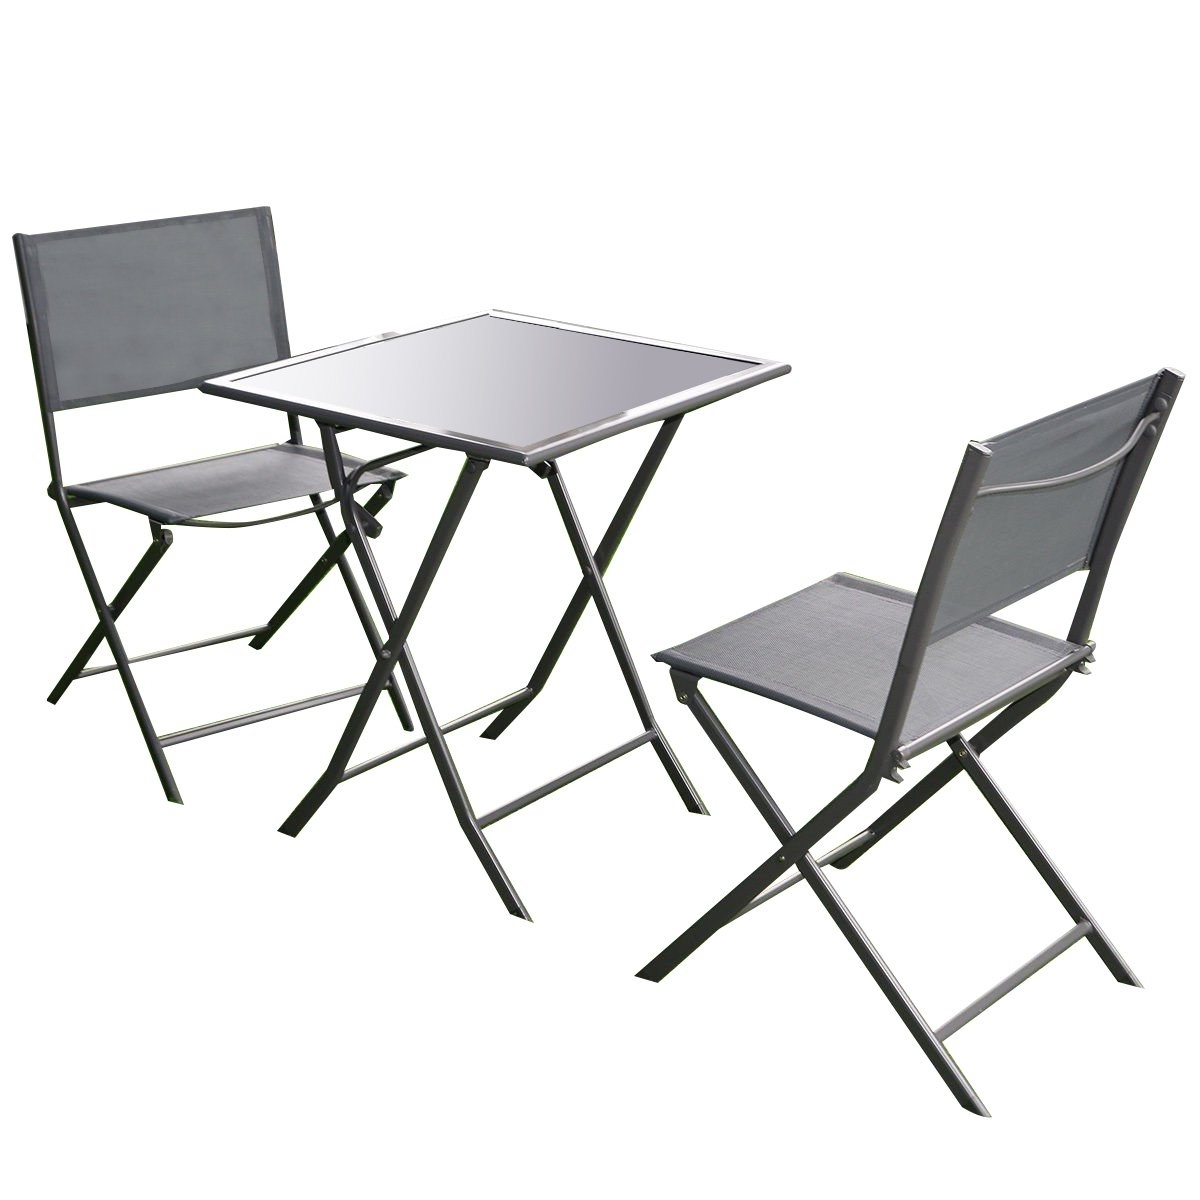 Best Rated In Patio Furniture Sets & Helpful Customer Reviews Intended For Most Up To Date Garten Storm Chairs With Espresso Finish Set Of (View 9 of 20)